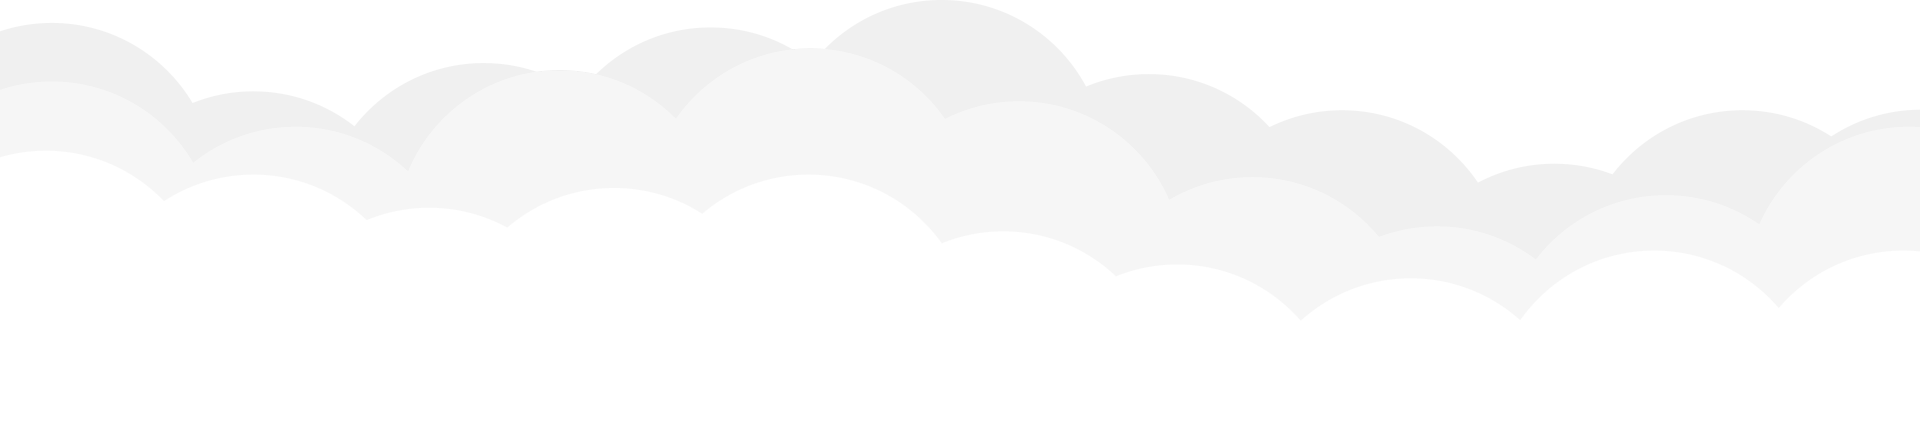 Windstripe Themes Cloud Background